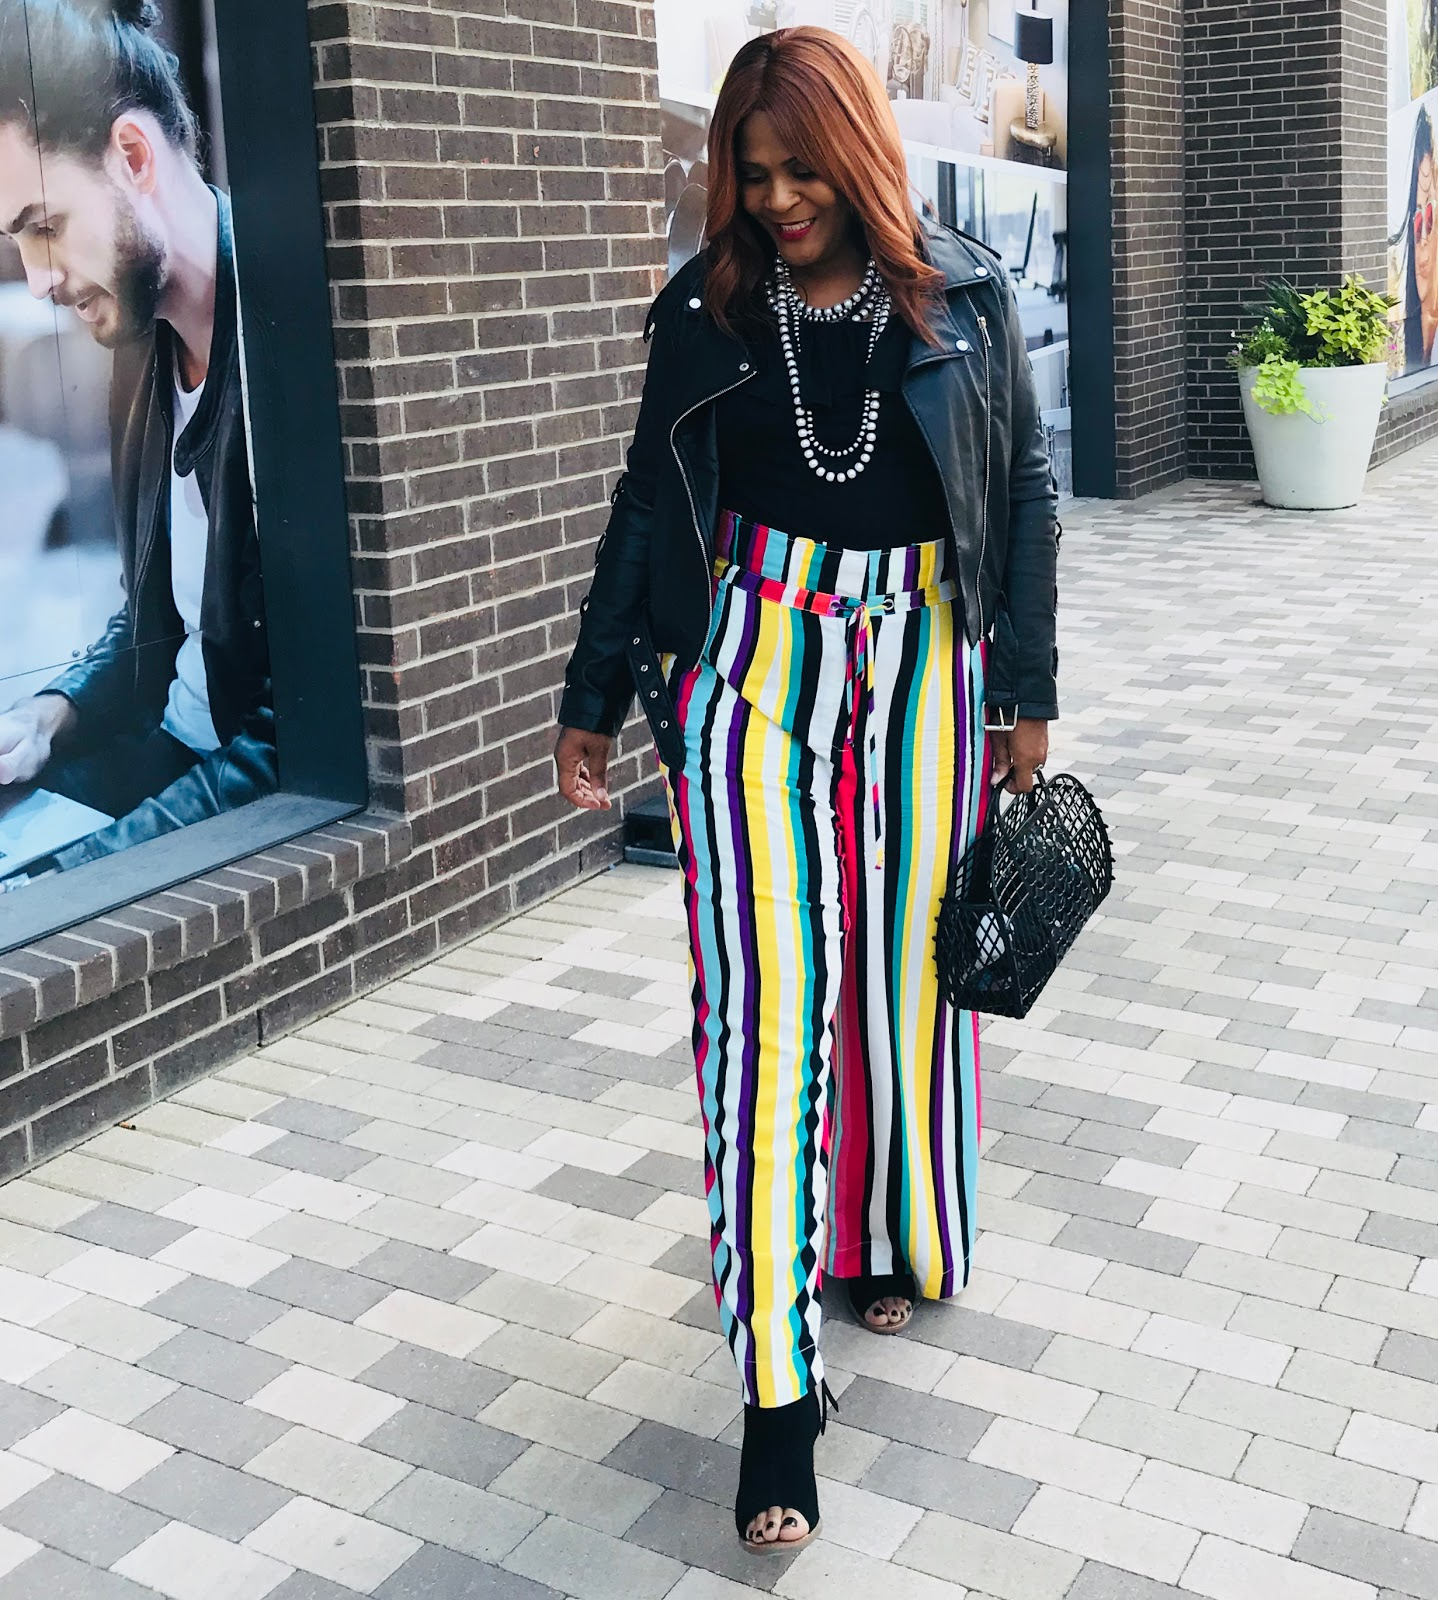 Image: Woman showing how woman of a certain age can wear stripes even in the mist of a midlife style rutBut I realized I may be in a bit of a self-pity midlife crisis. Dang, I hate to say that or admit it to myself. #judgemystyle.